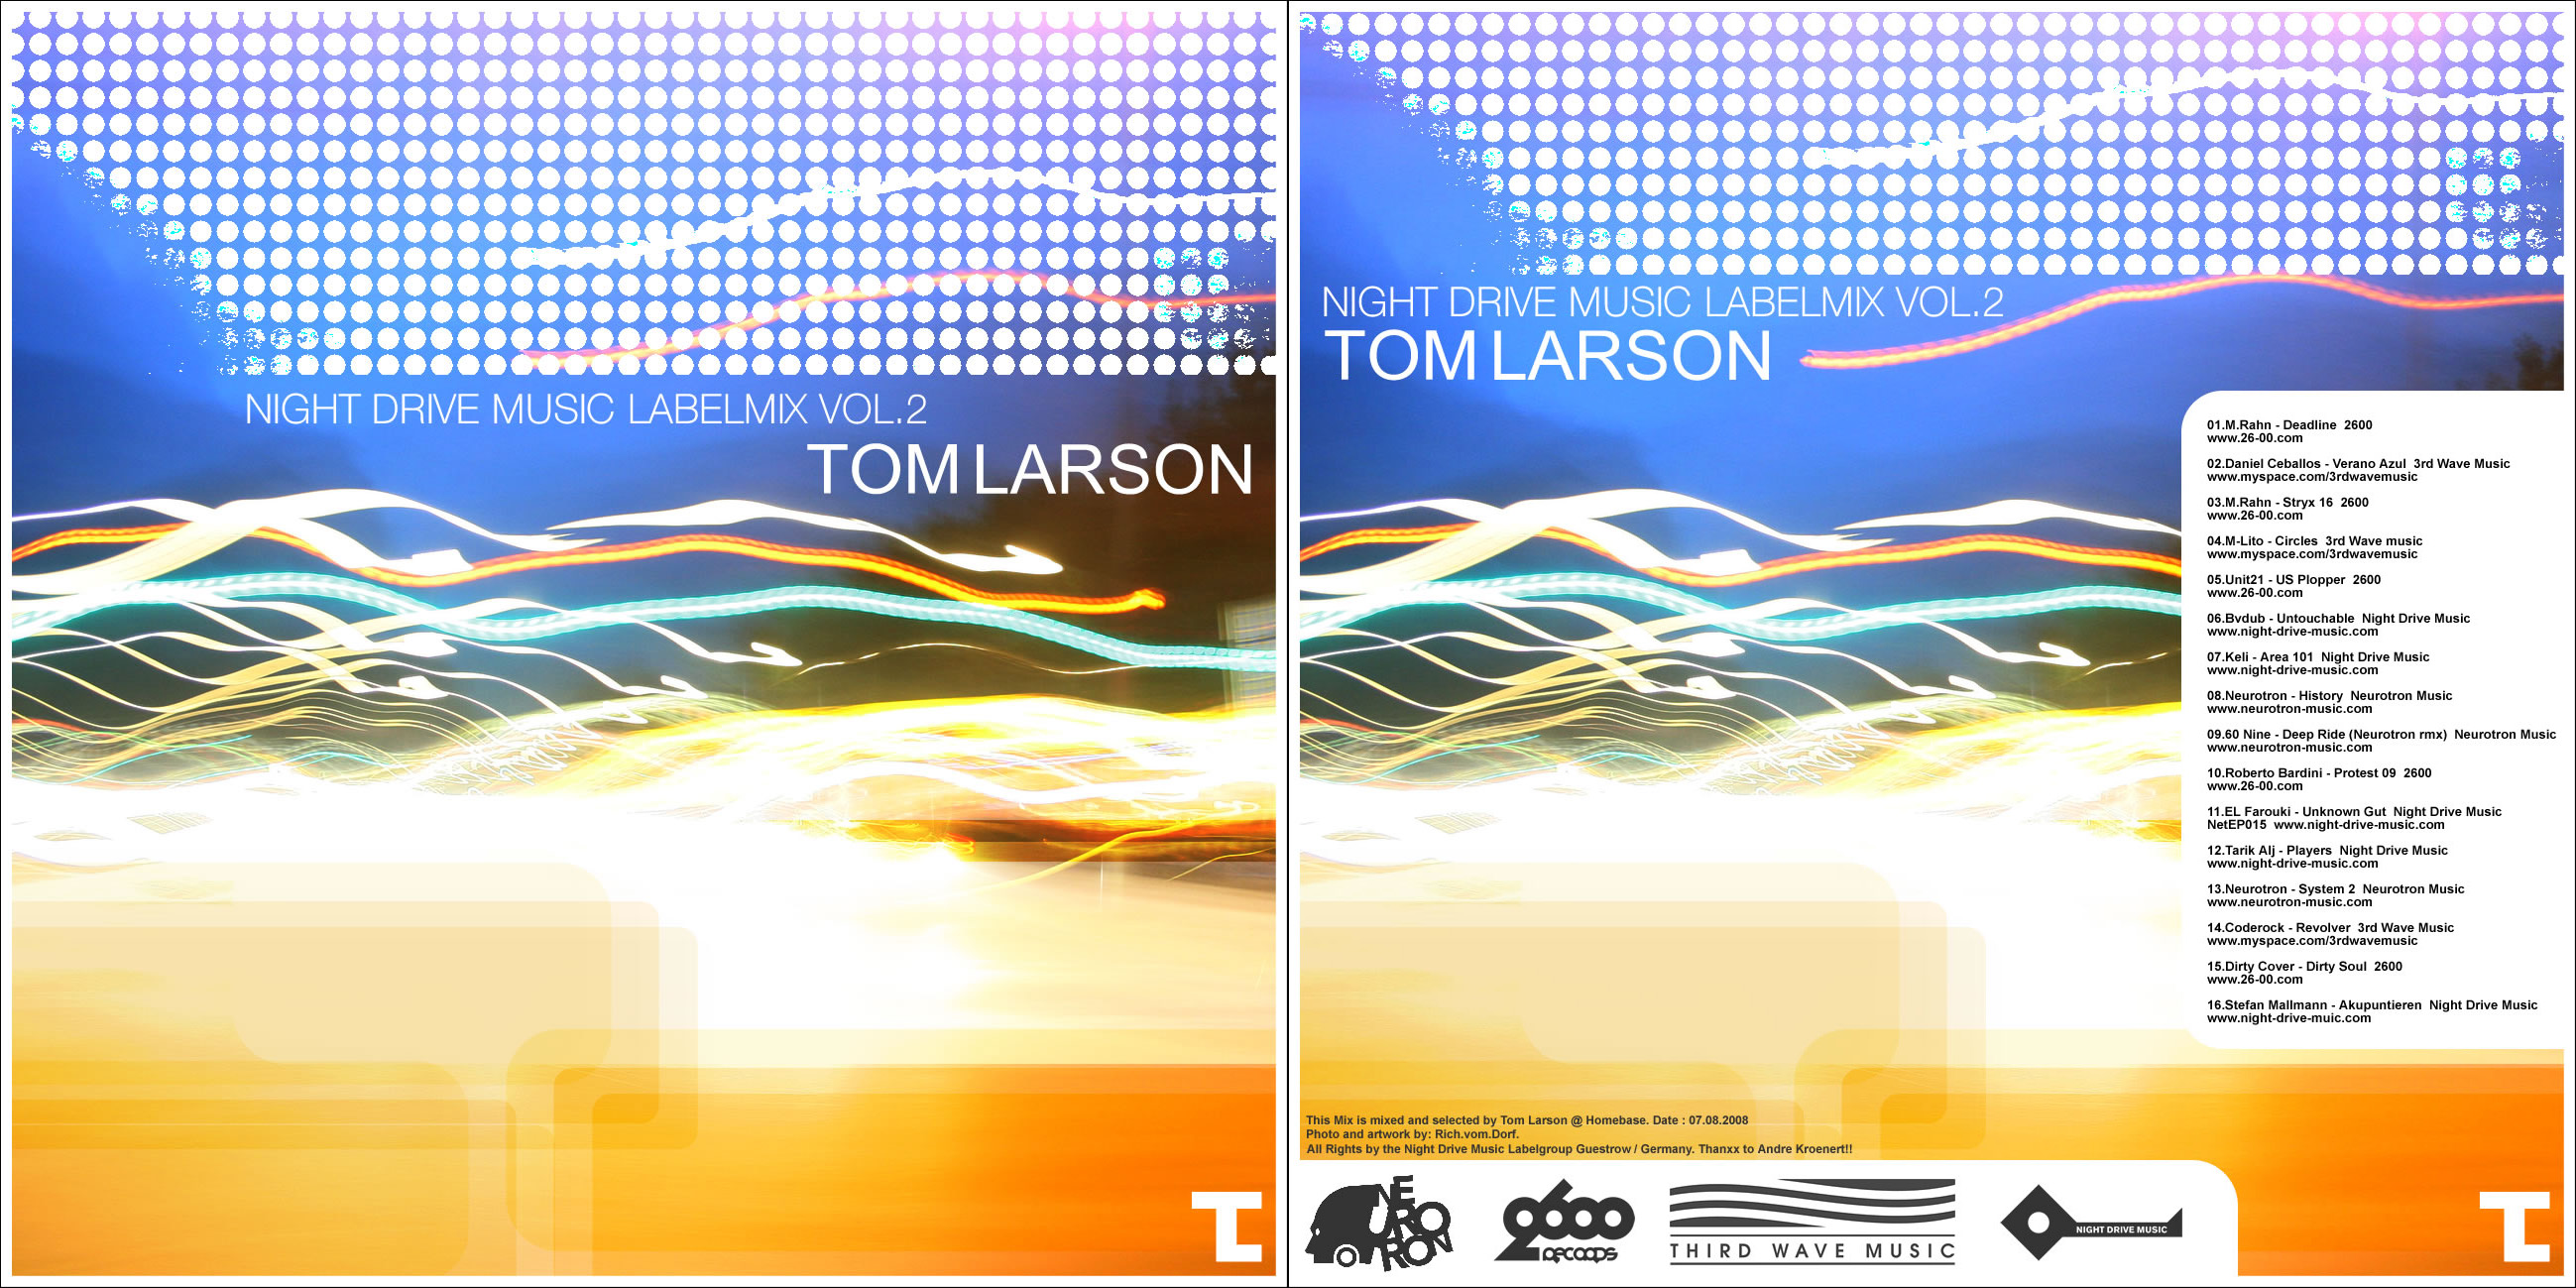 http://www.mixotic.net/mixes/142_-_Tom_Larson_-_Night_Drive_Music_Labelmix_Vol_2/cover_large.jpg